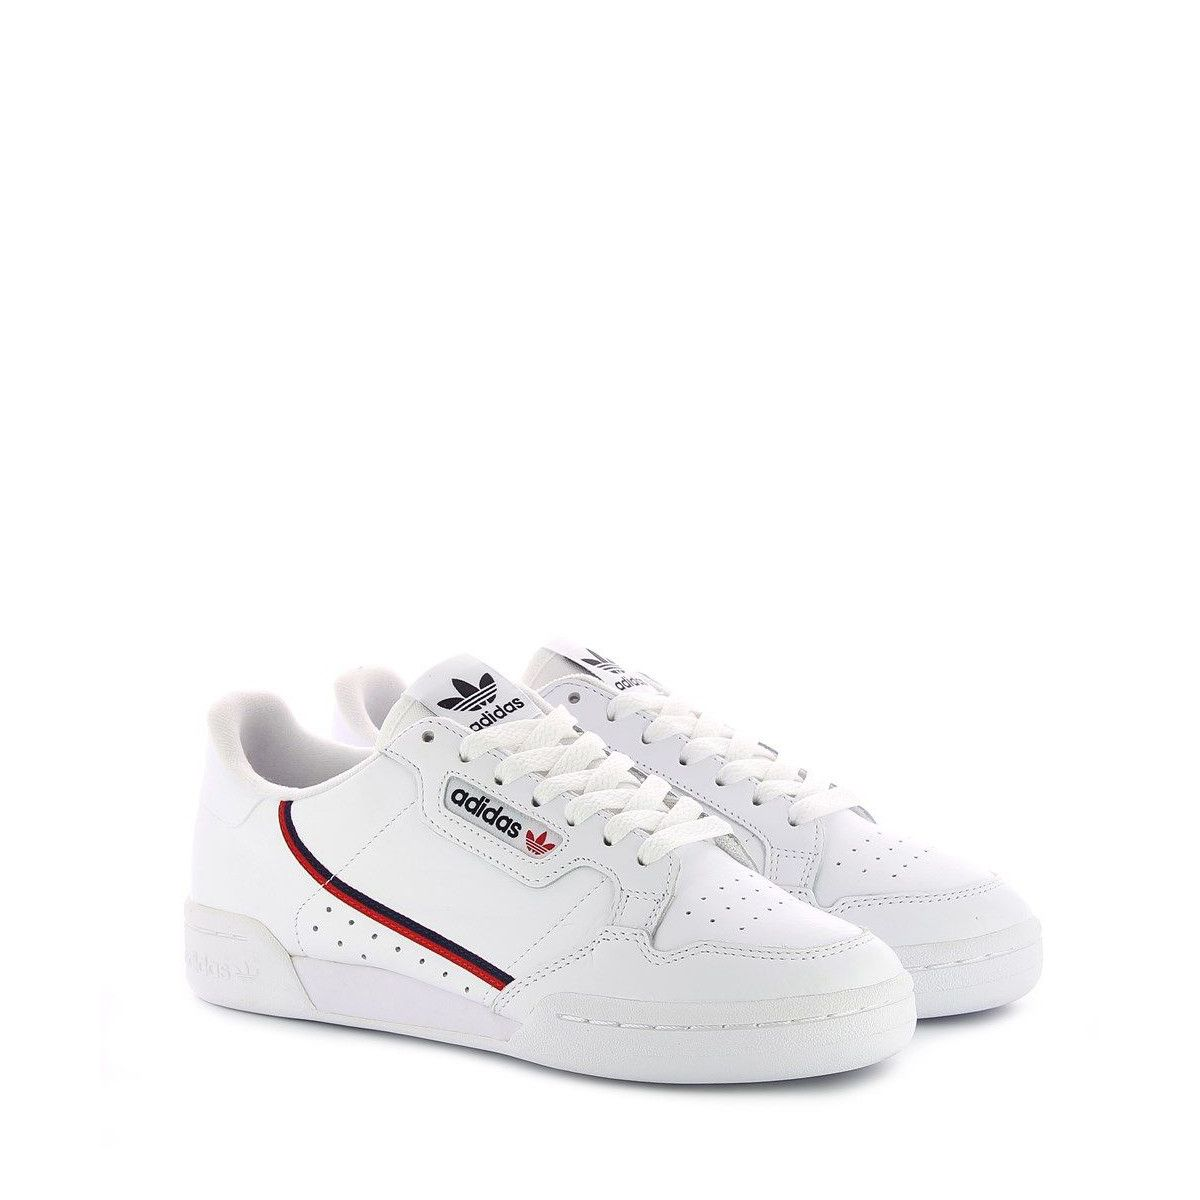 Baskets Continental 80 Taille : 41 13;42 23;44;45 13;42